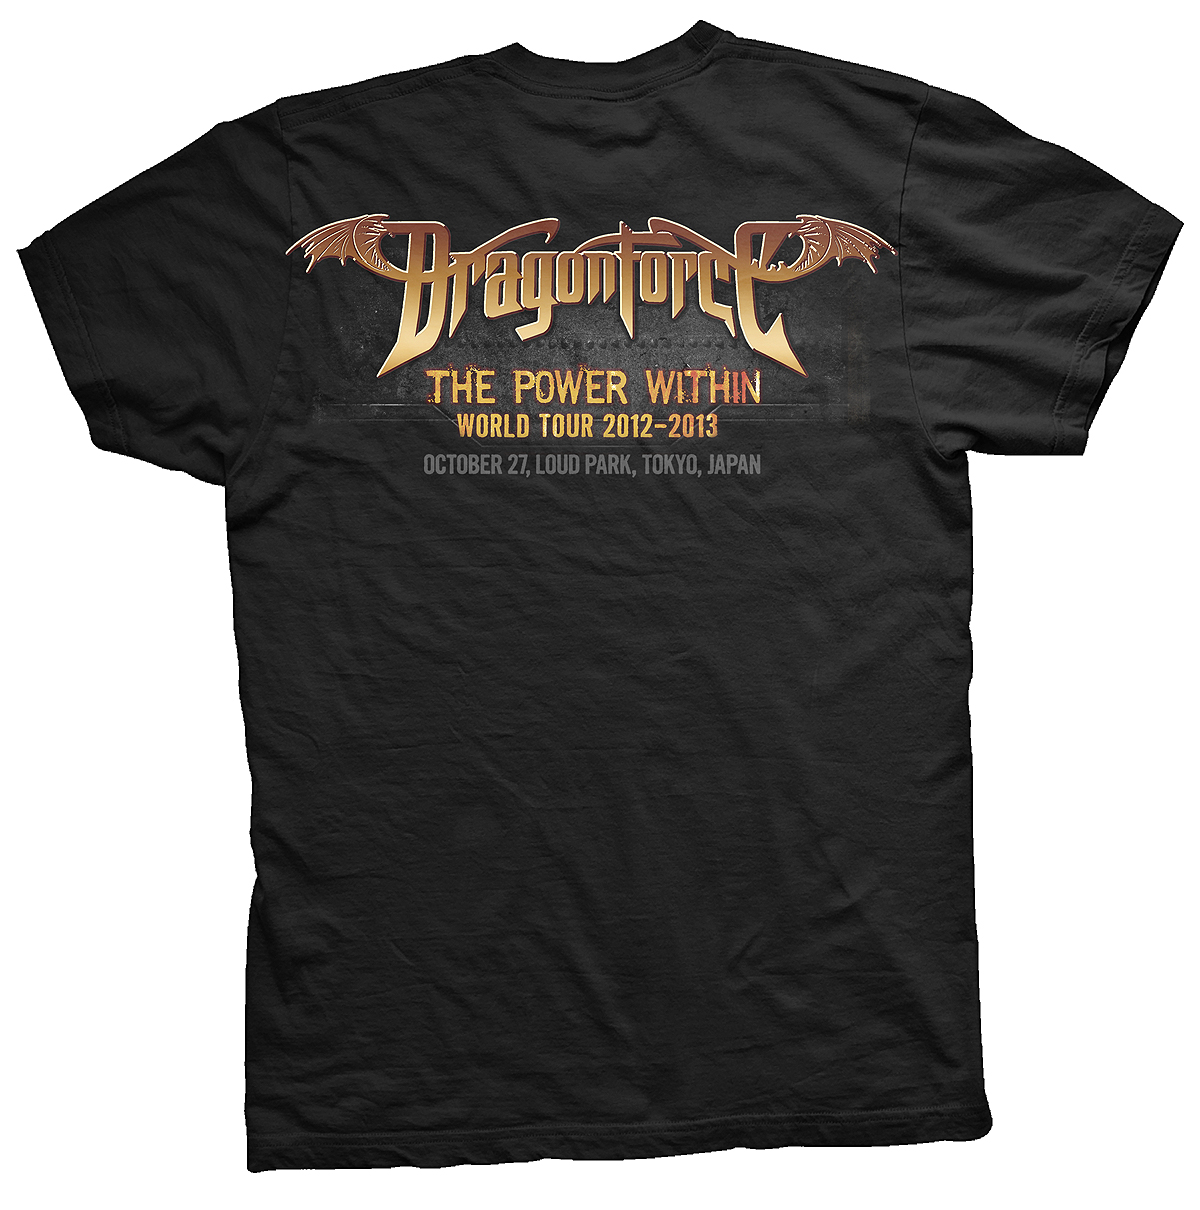 The Power Within World Tour Tee